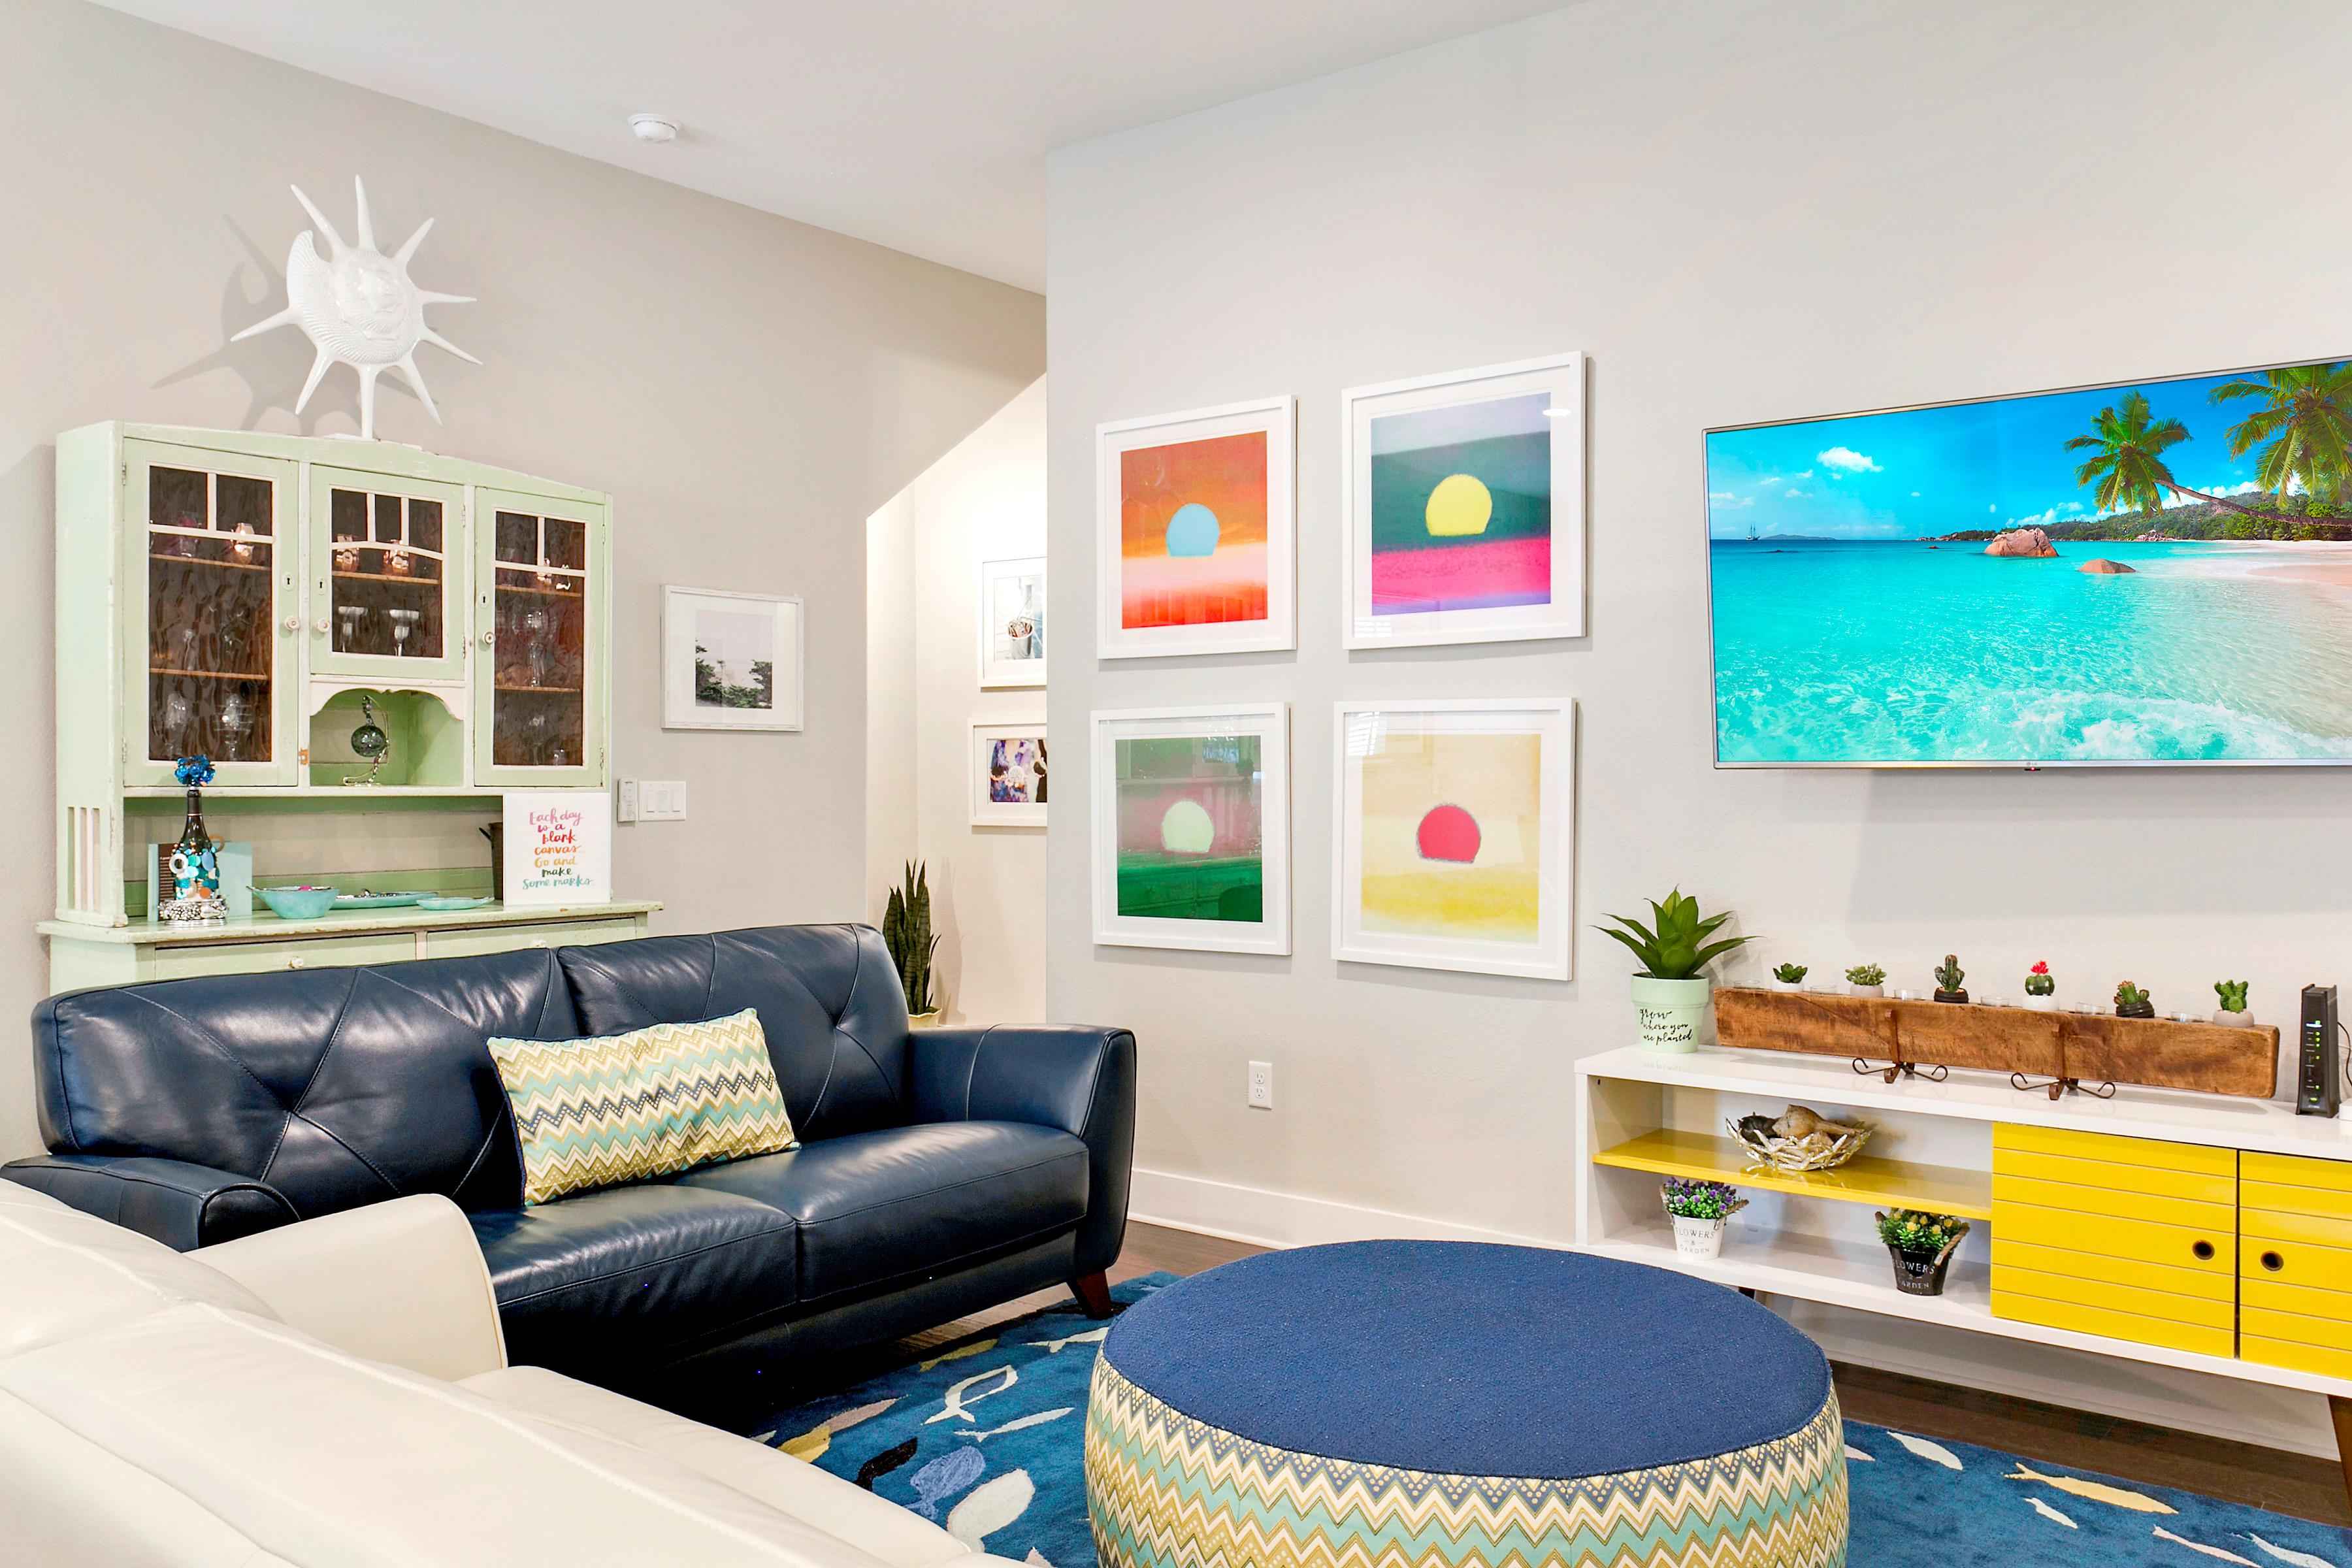 Beach-inspired decor adds to the charm of this rental.